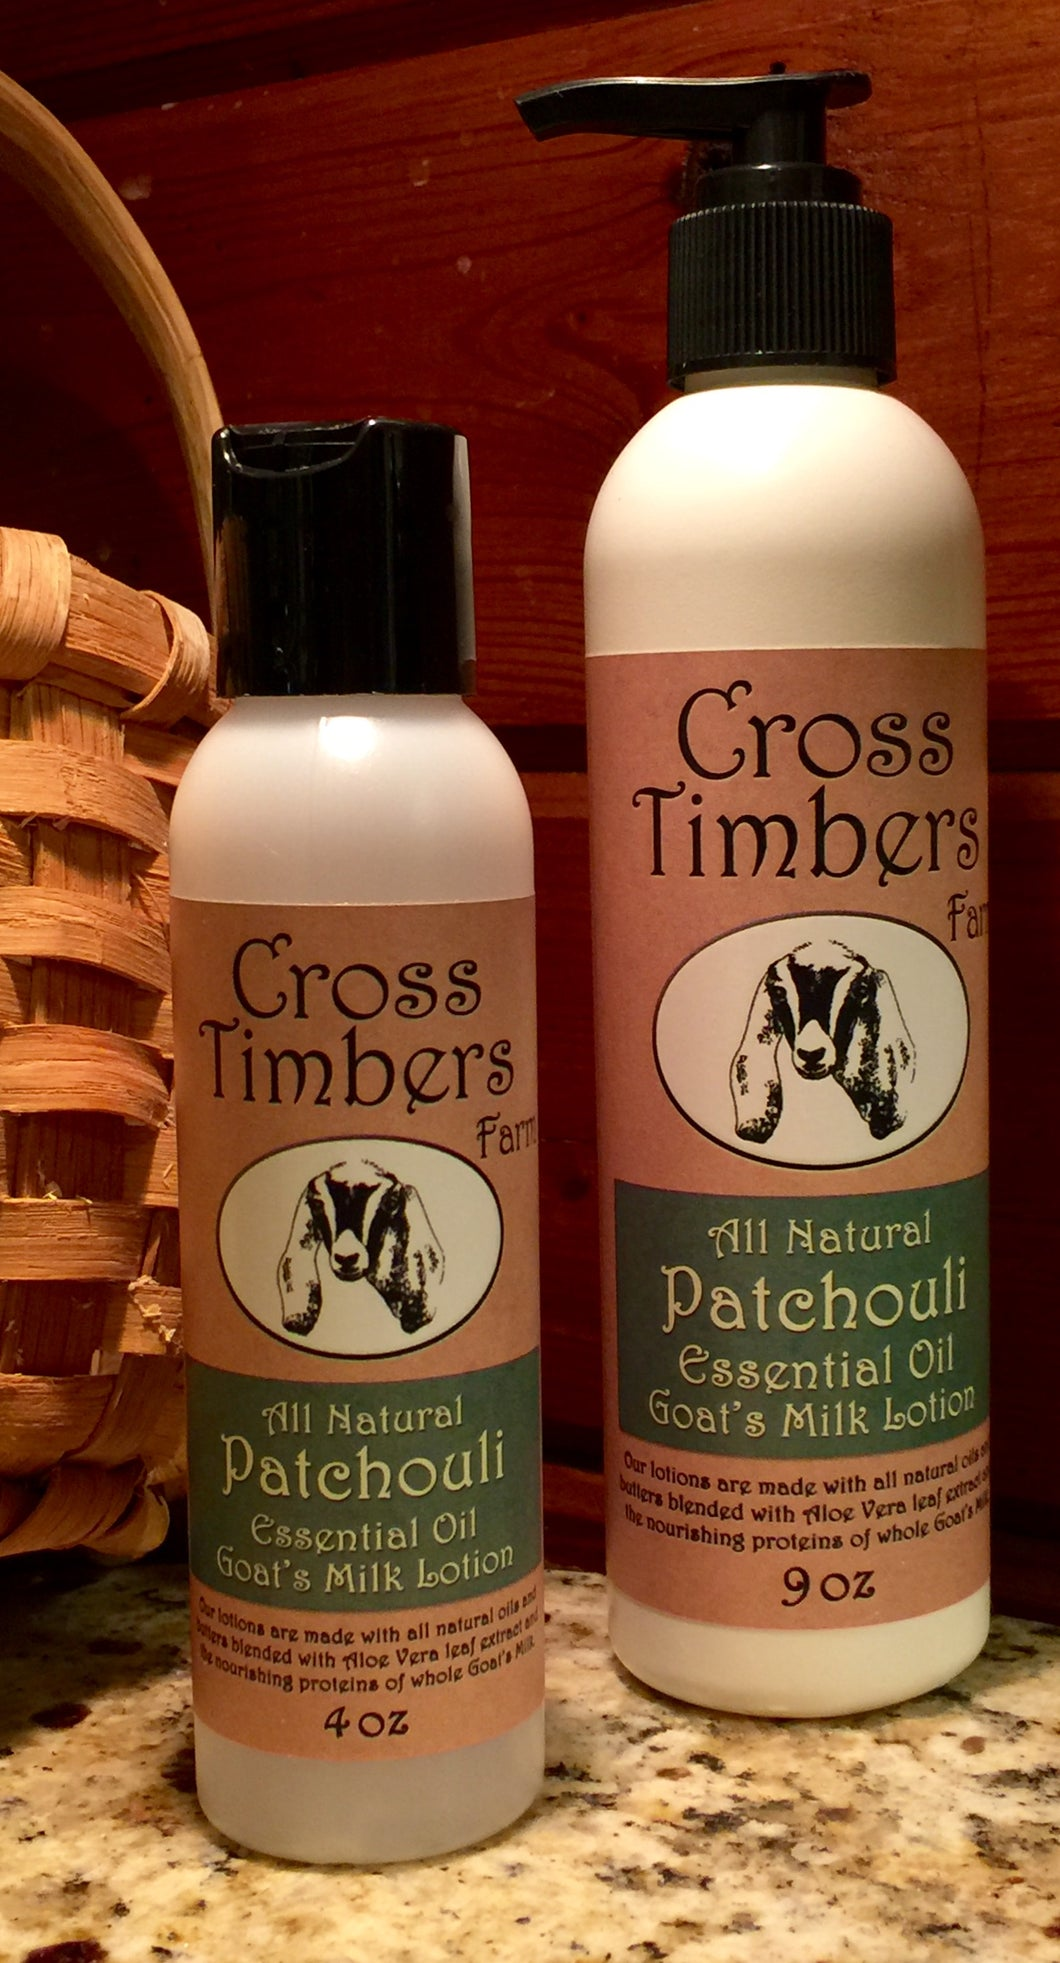 Patchouli Essential Oil Goat's Milk Lotion 4oz